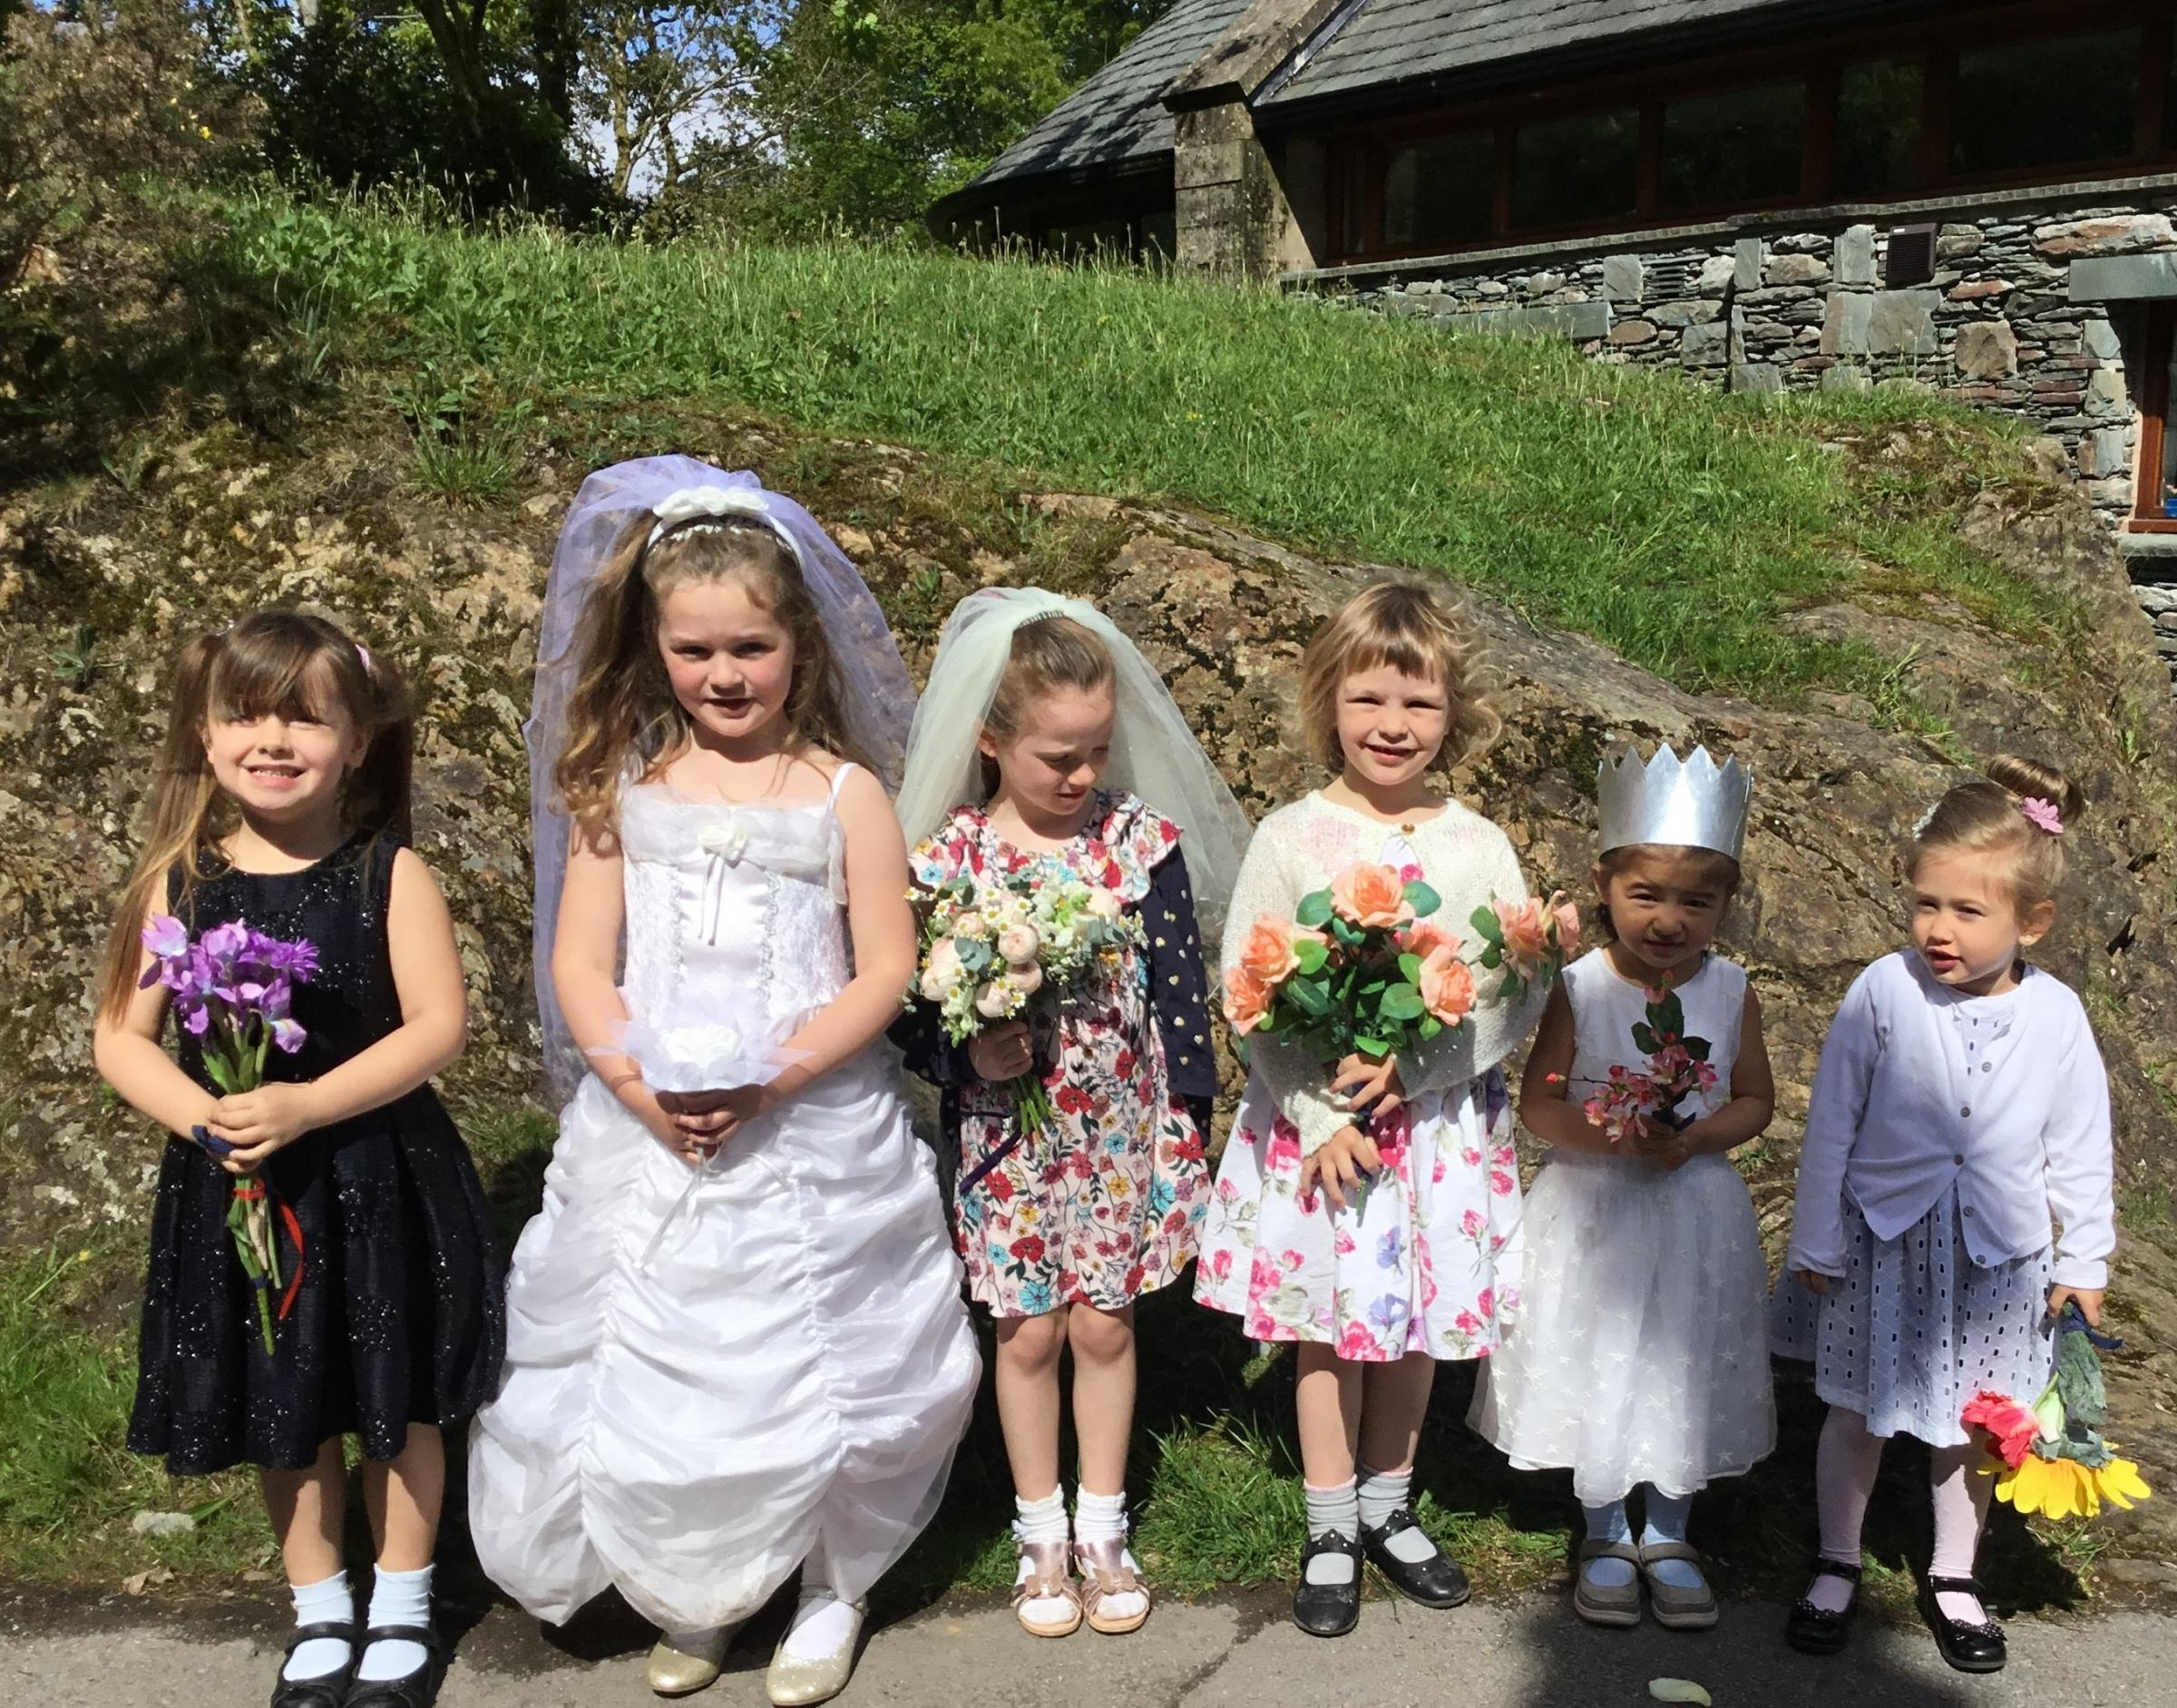 Youngsters at Ambleside CE Primary School staged their own Royal wedding celebrations